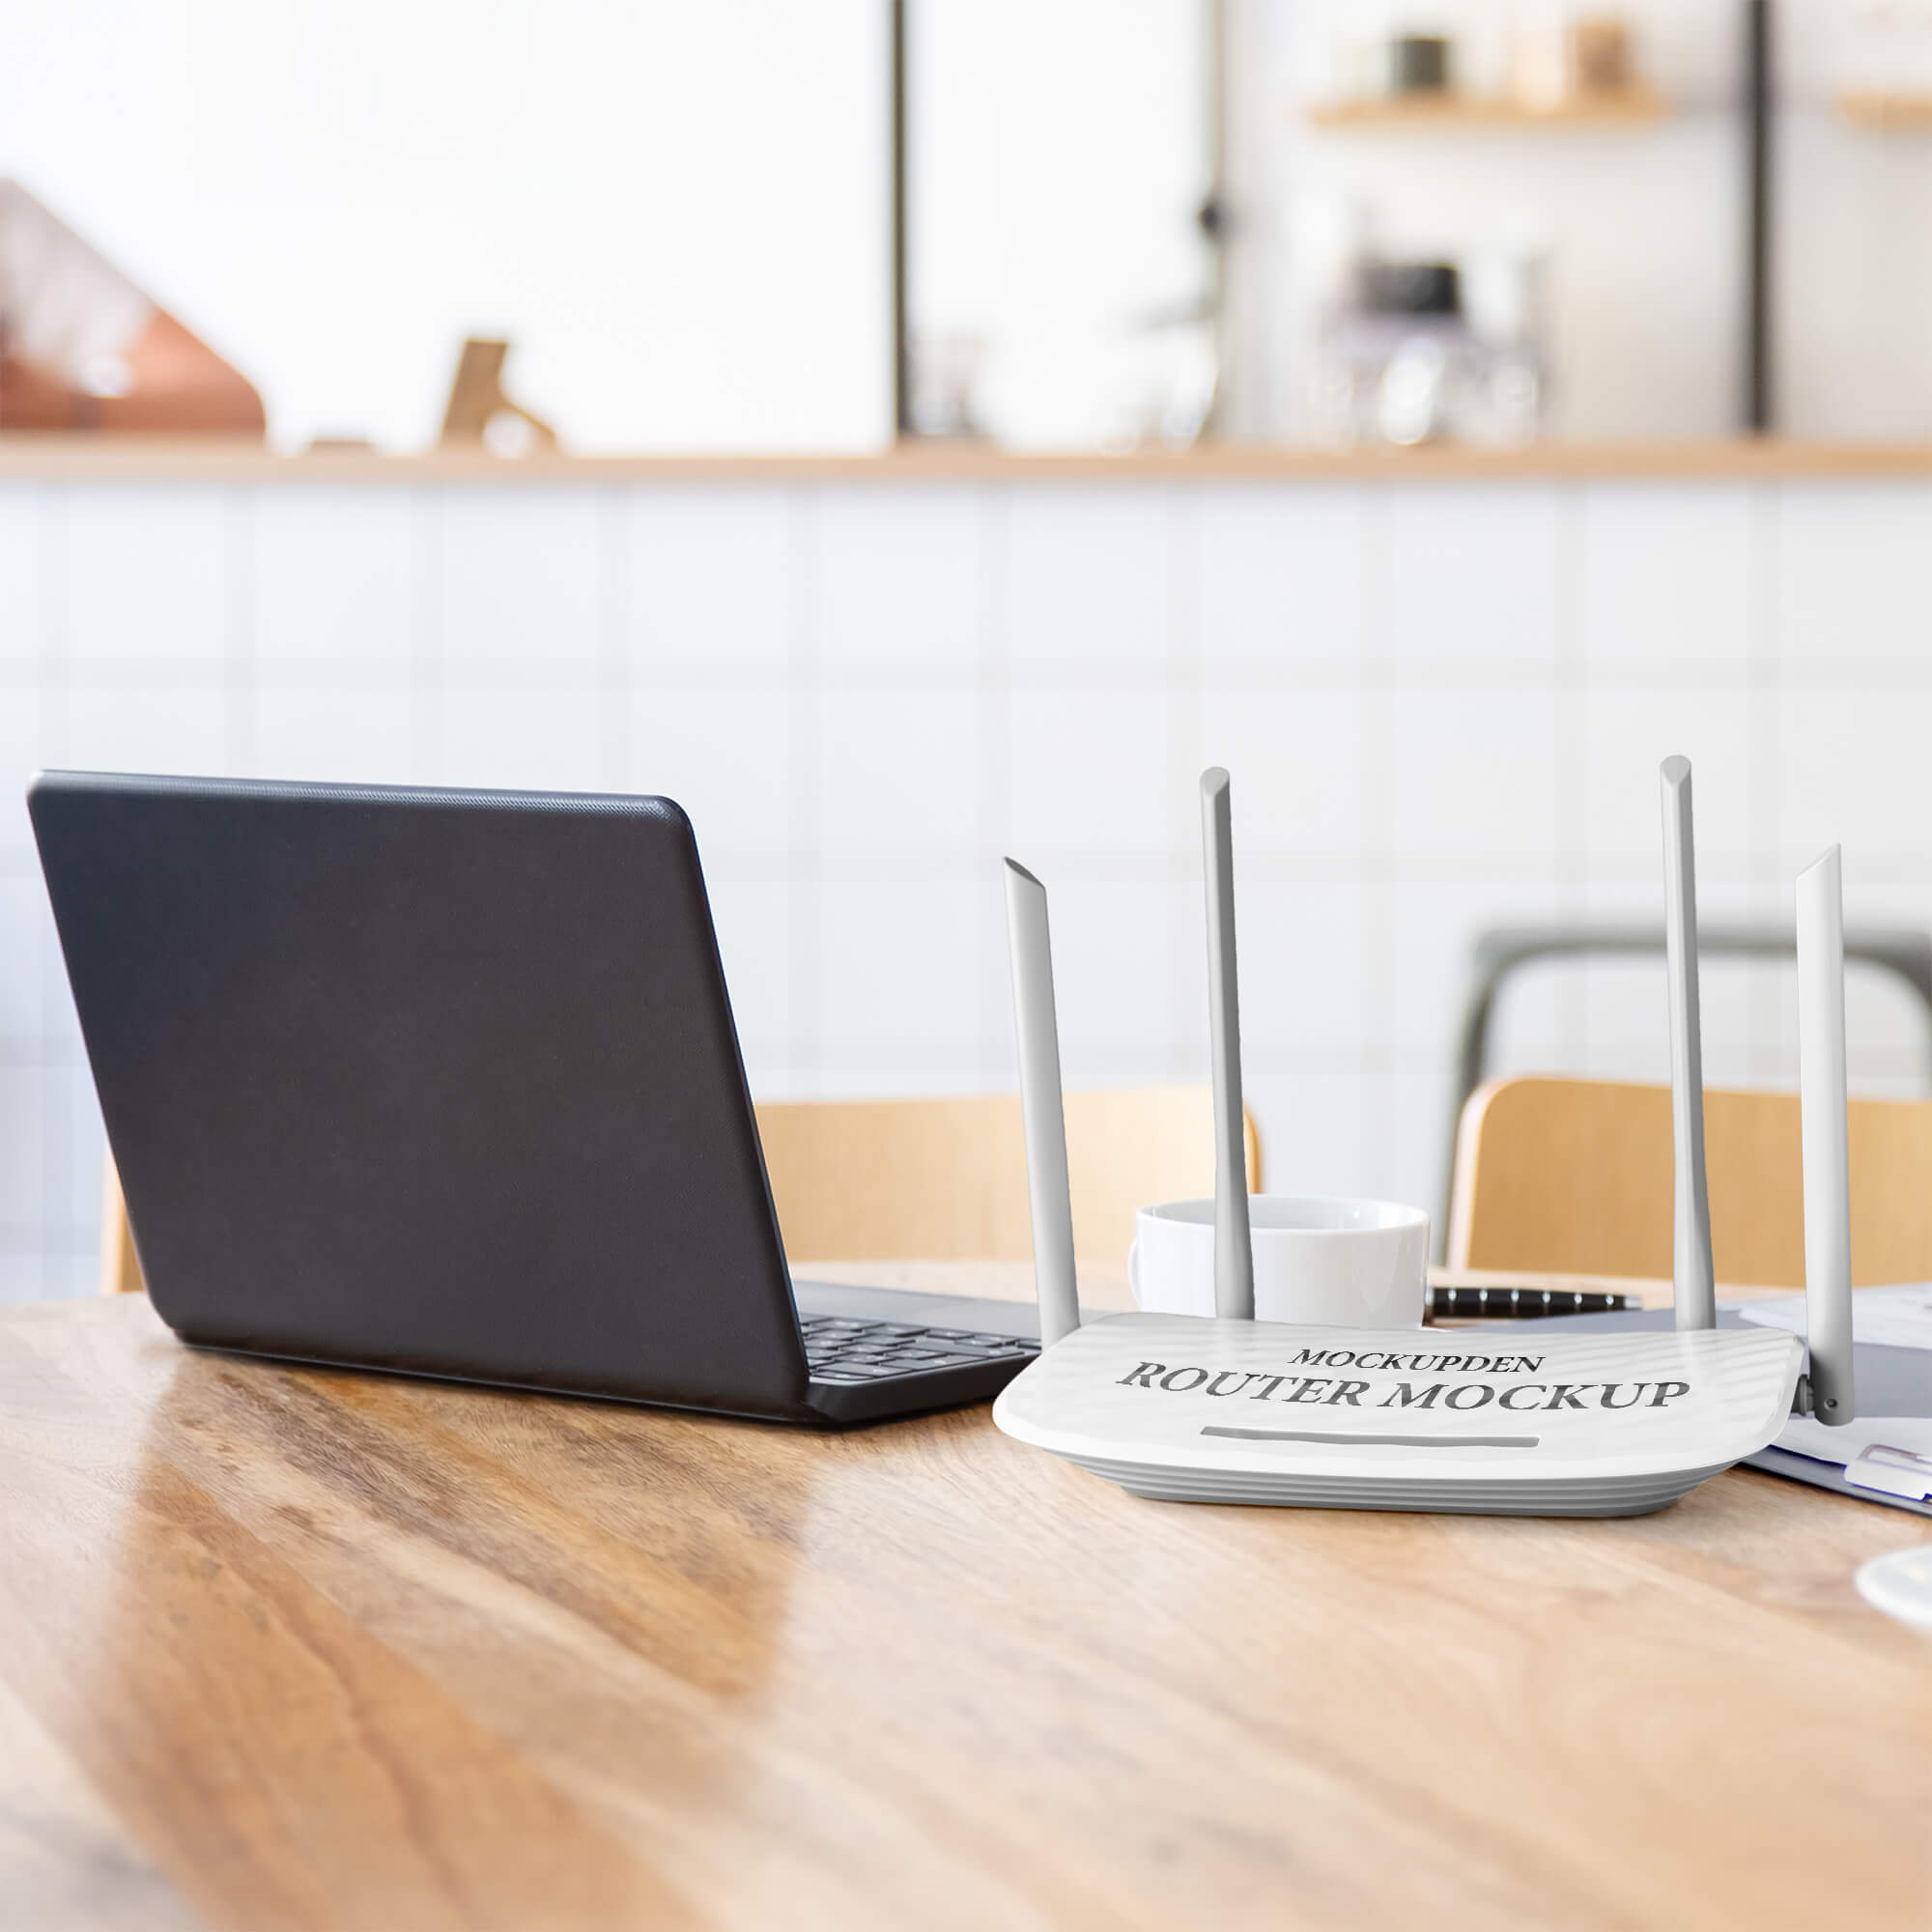 Free Router Mockup PSD Template